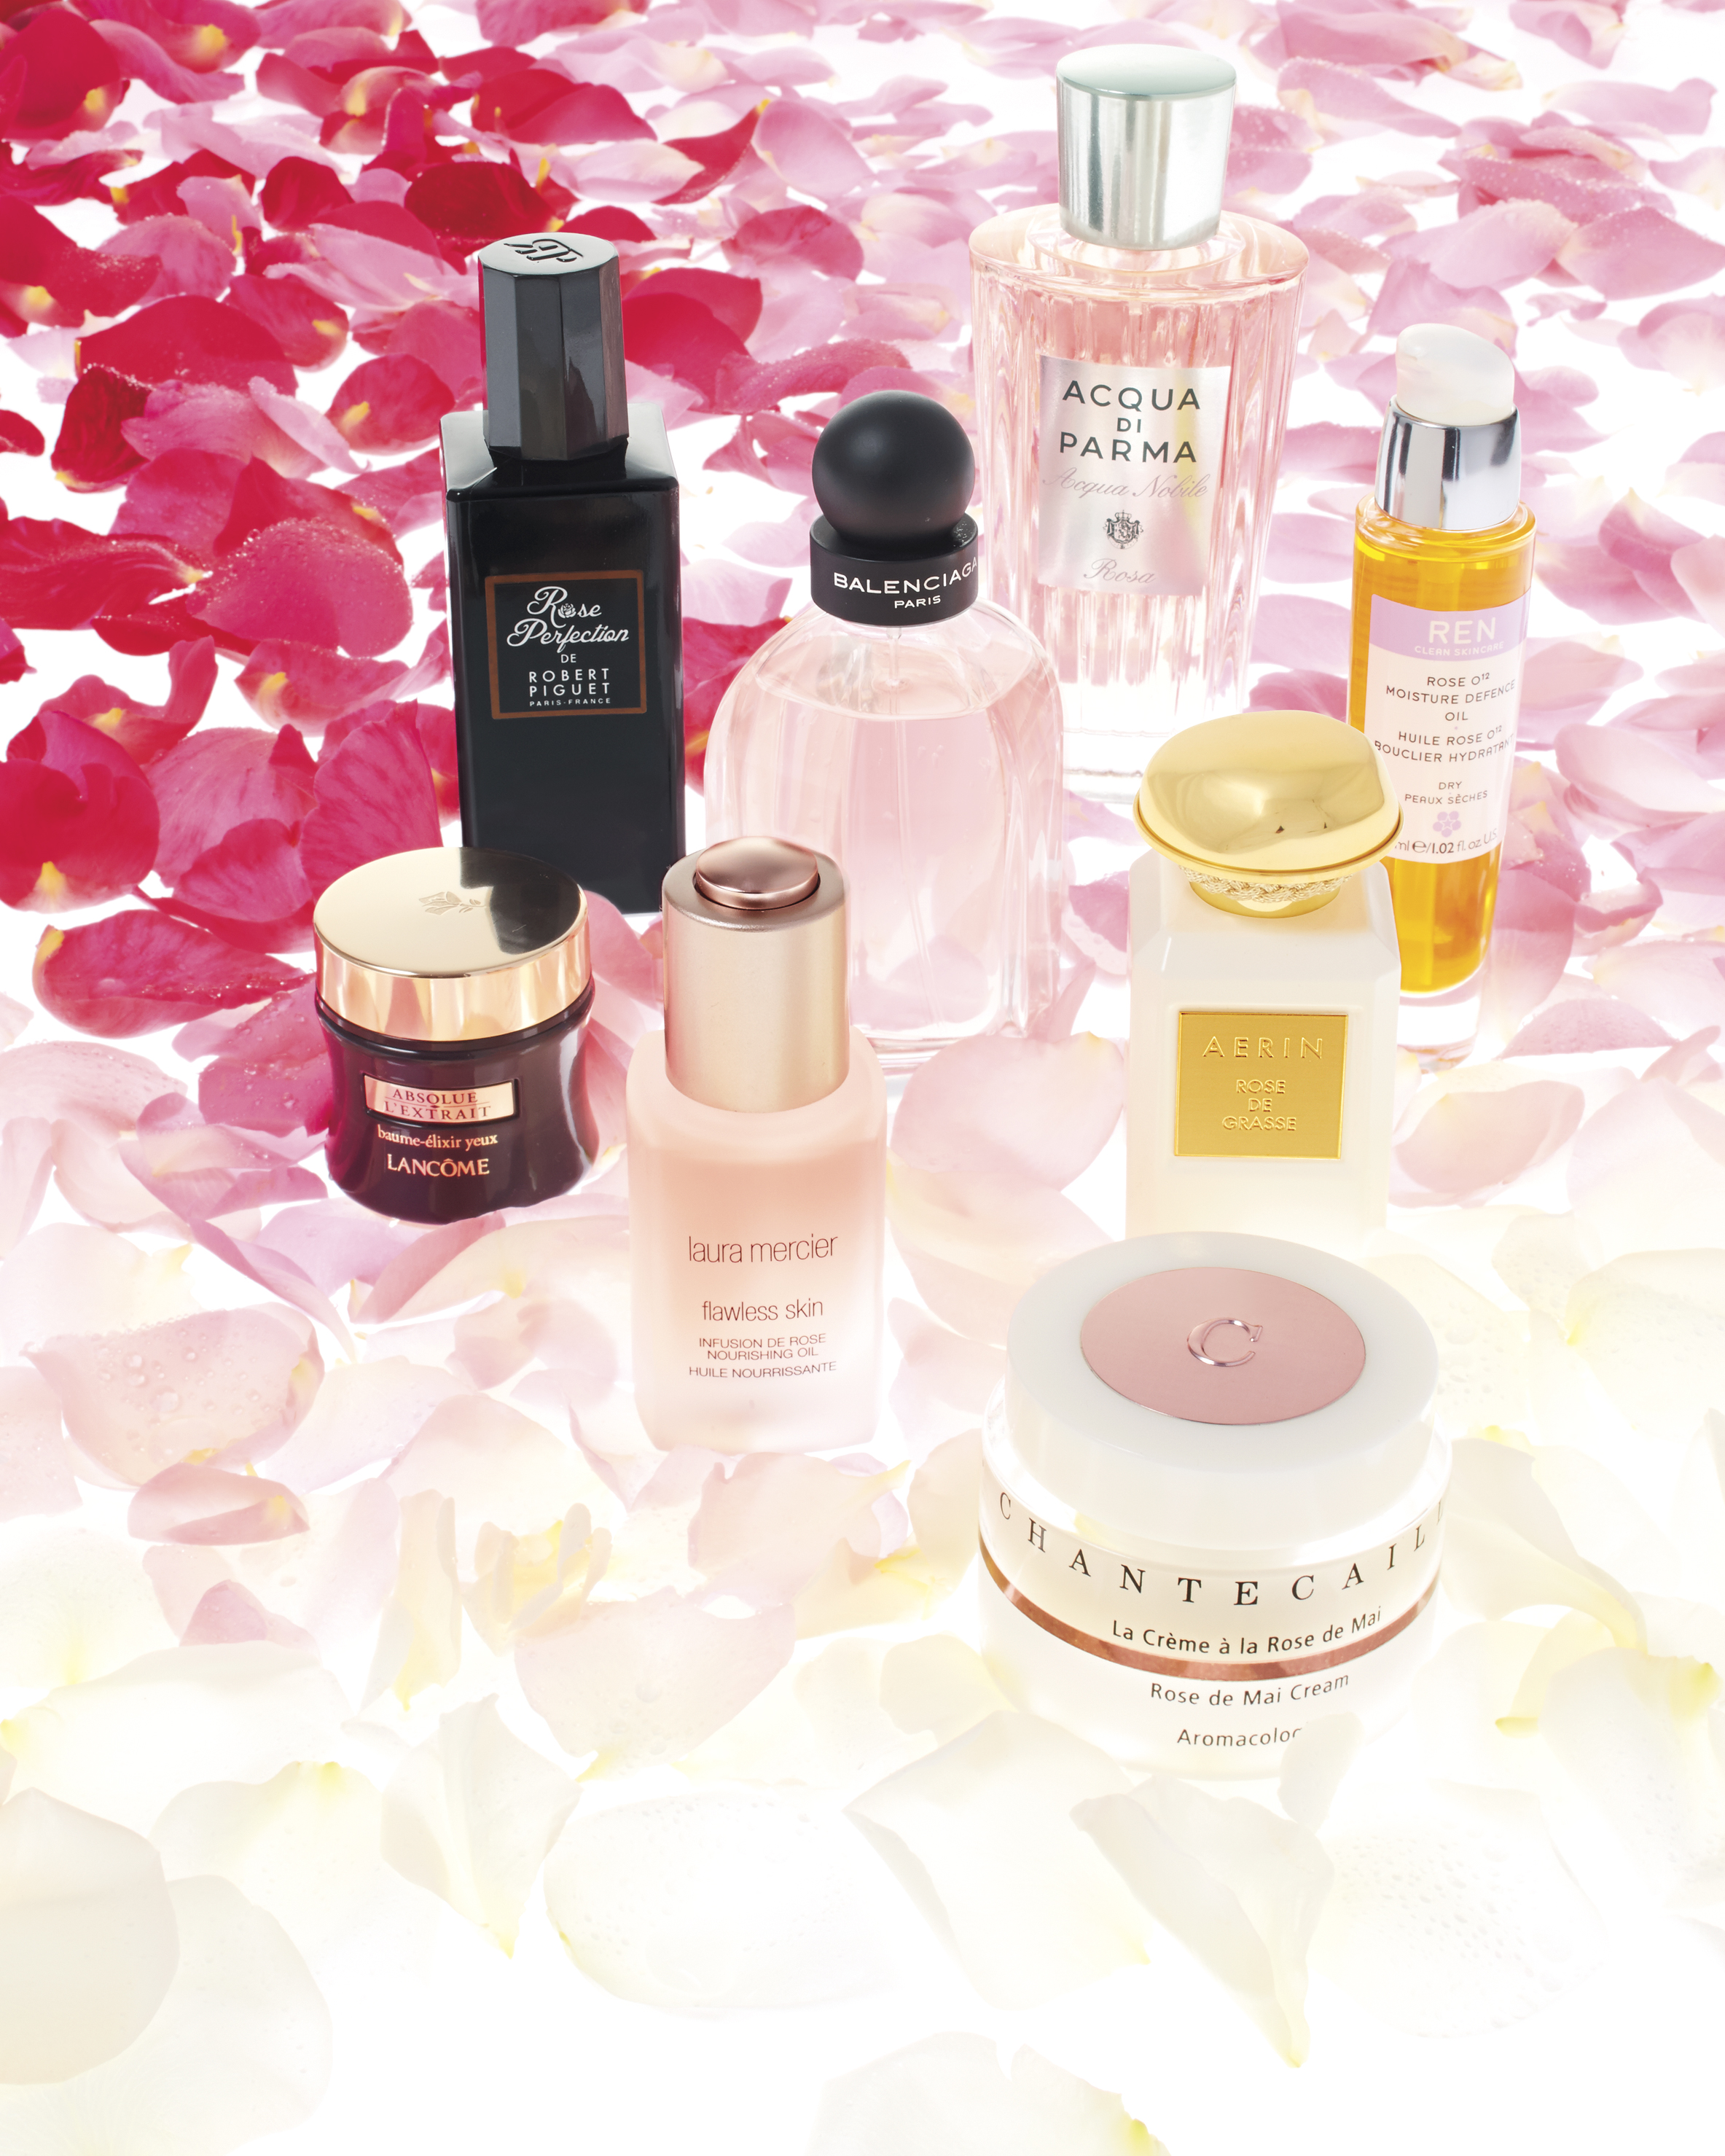 8 Rose Beauty Products That Will Leave You As Beautiful on Your Wedding Day As the Flower